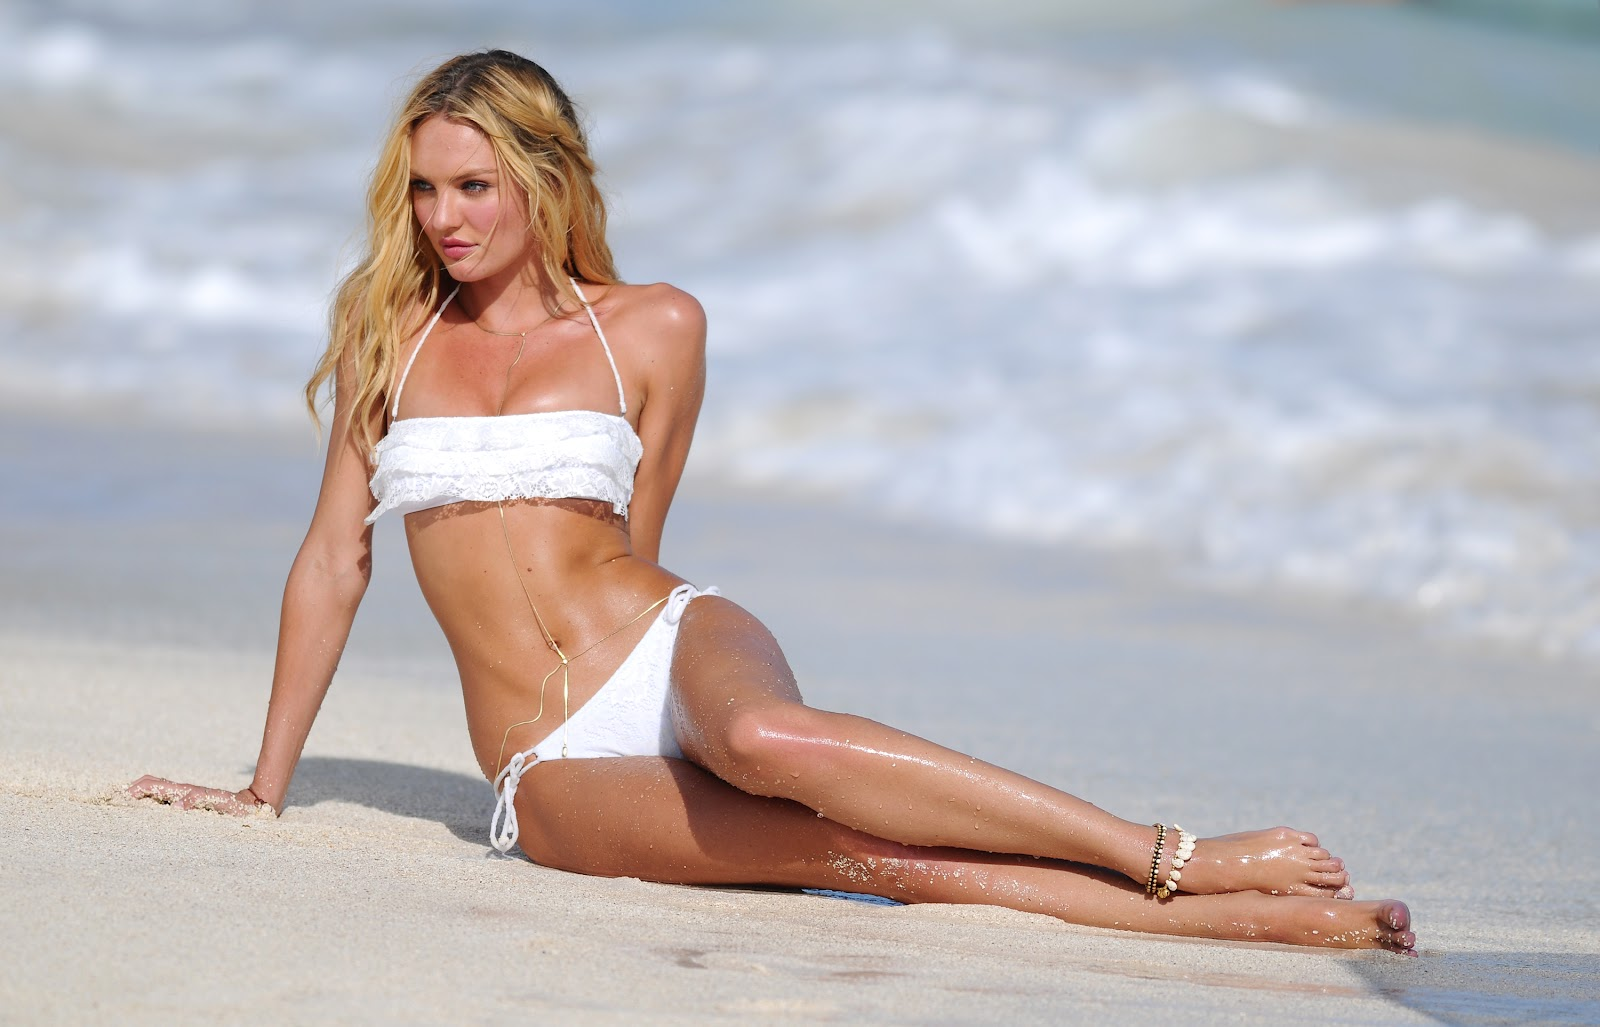 candice swanepoel feet celebrity pictures